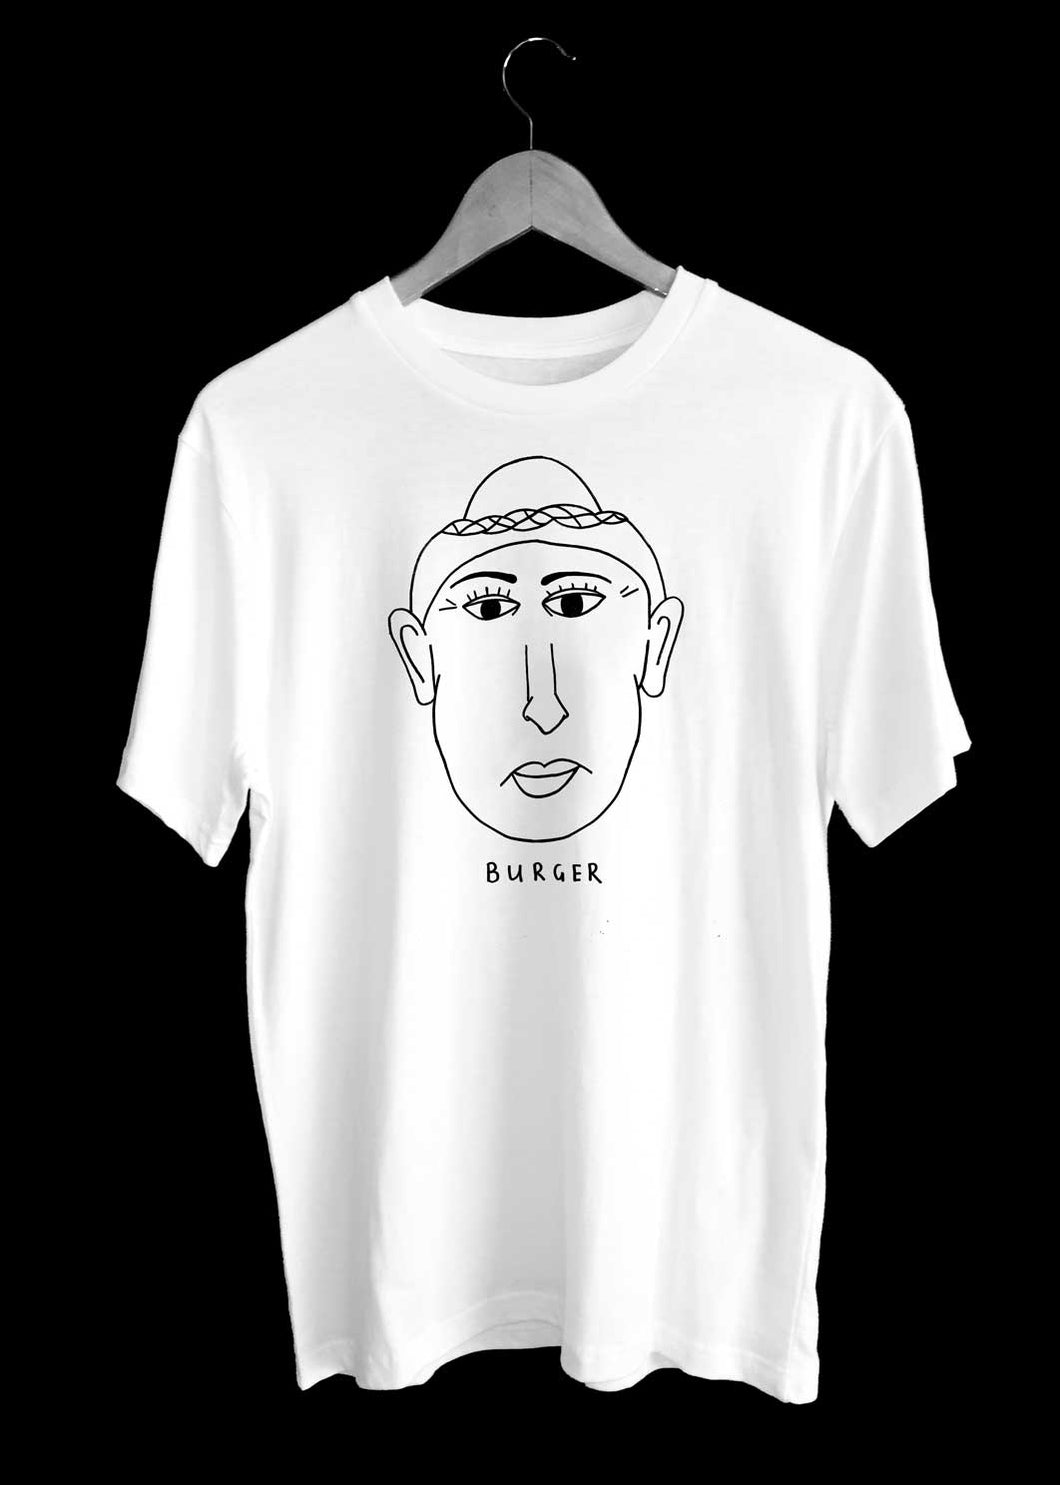 Jackie BURGER Illustration T-Shirt by TILONE